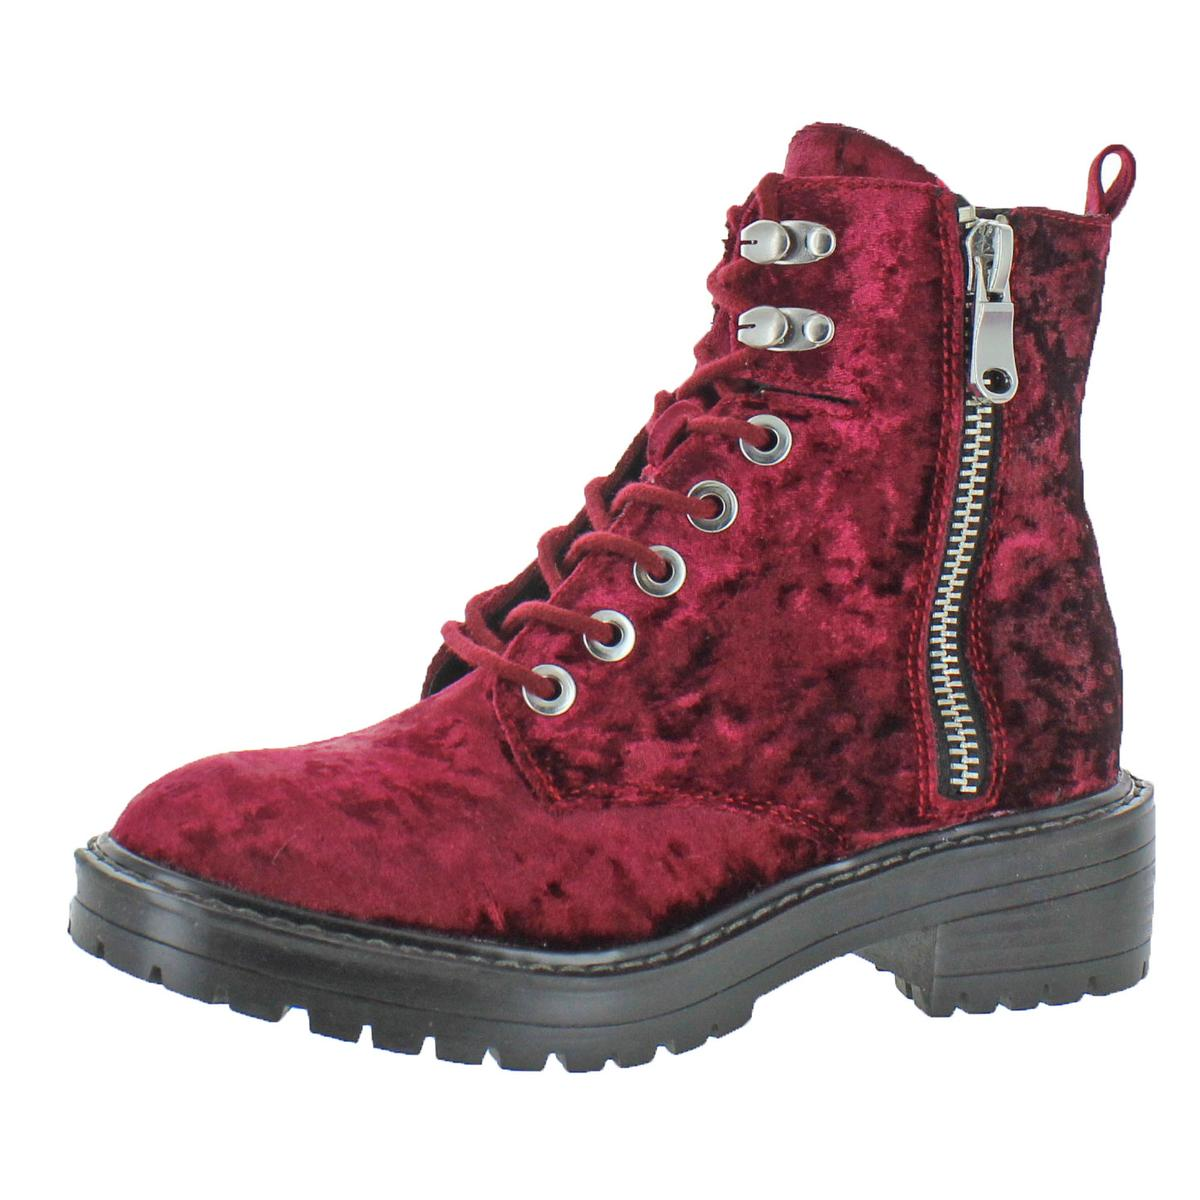 4db23676d3d Details about Steve Madden Womens Revive Red Ankle Combat Boots Shoes 6  Medium (B